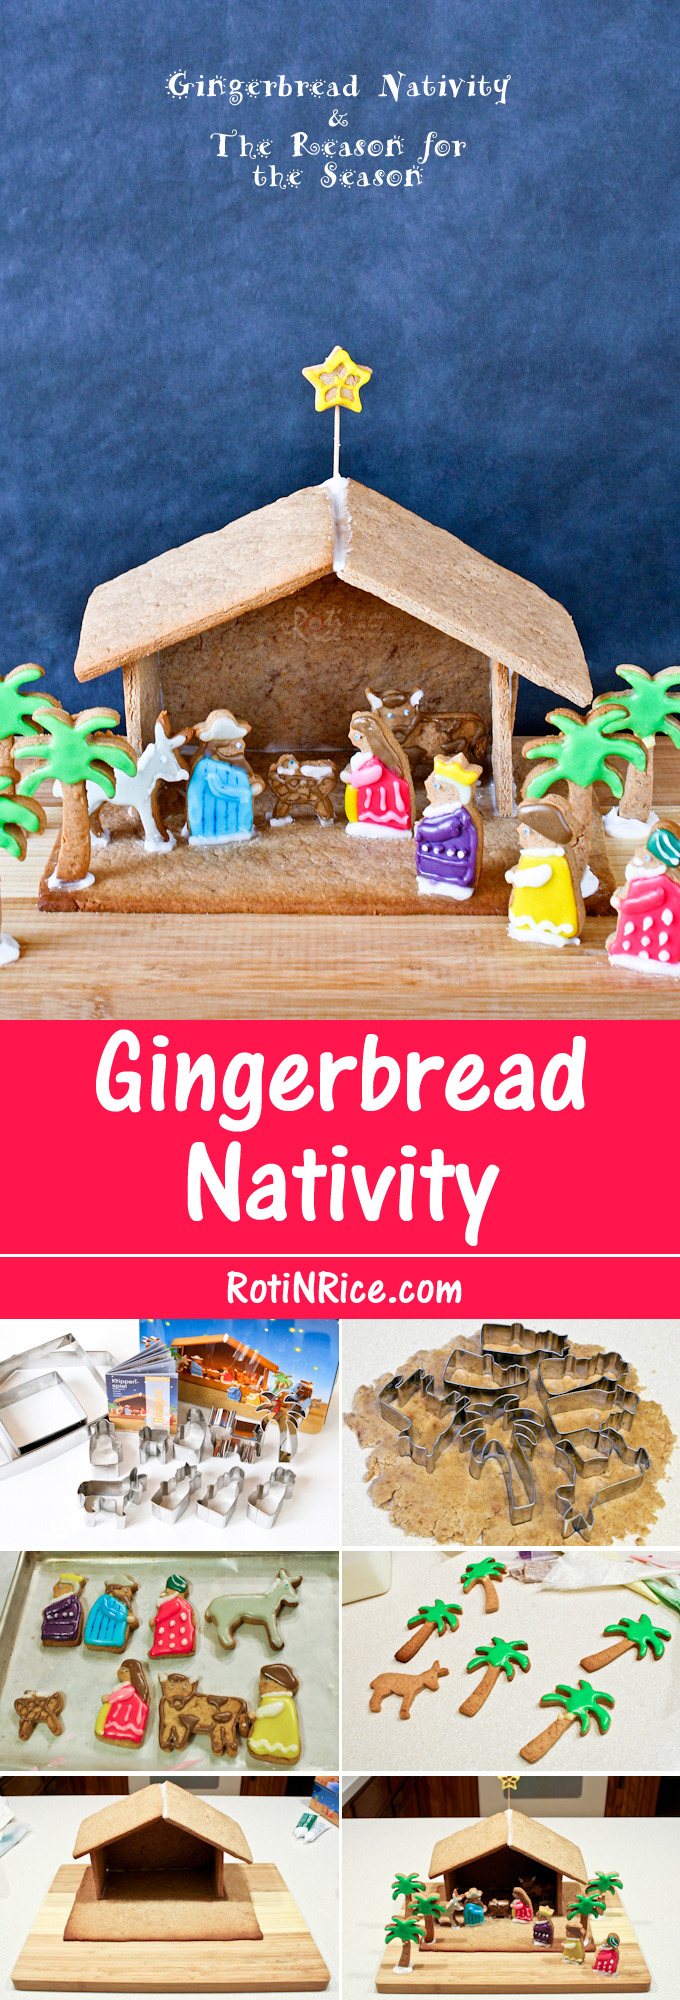 Make a Gingerbread Nativity with your family this Advent season. It is a fun and tasty way to explore the story of the first Christmas. | RotiNRice.com